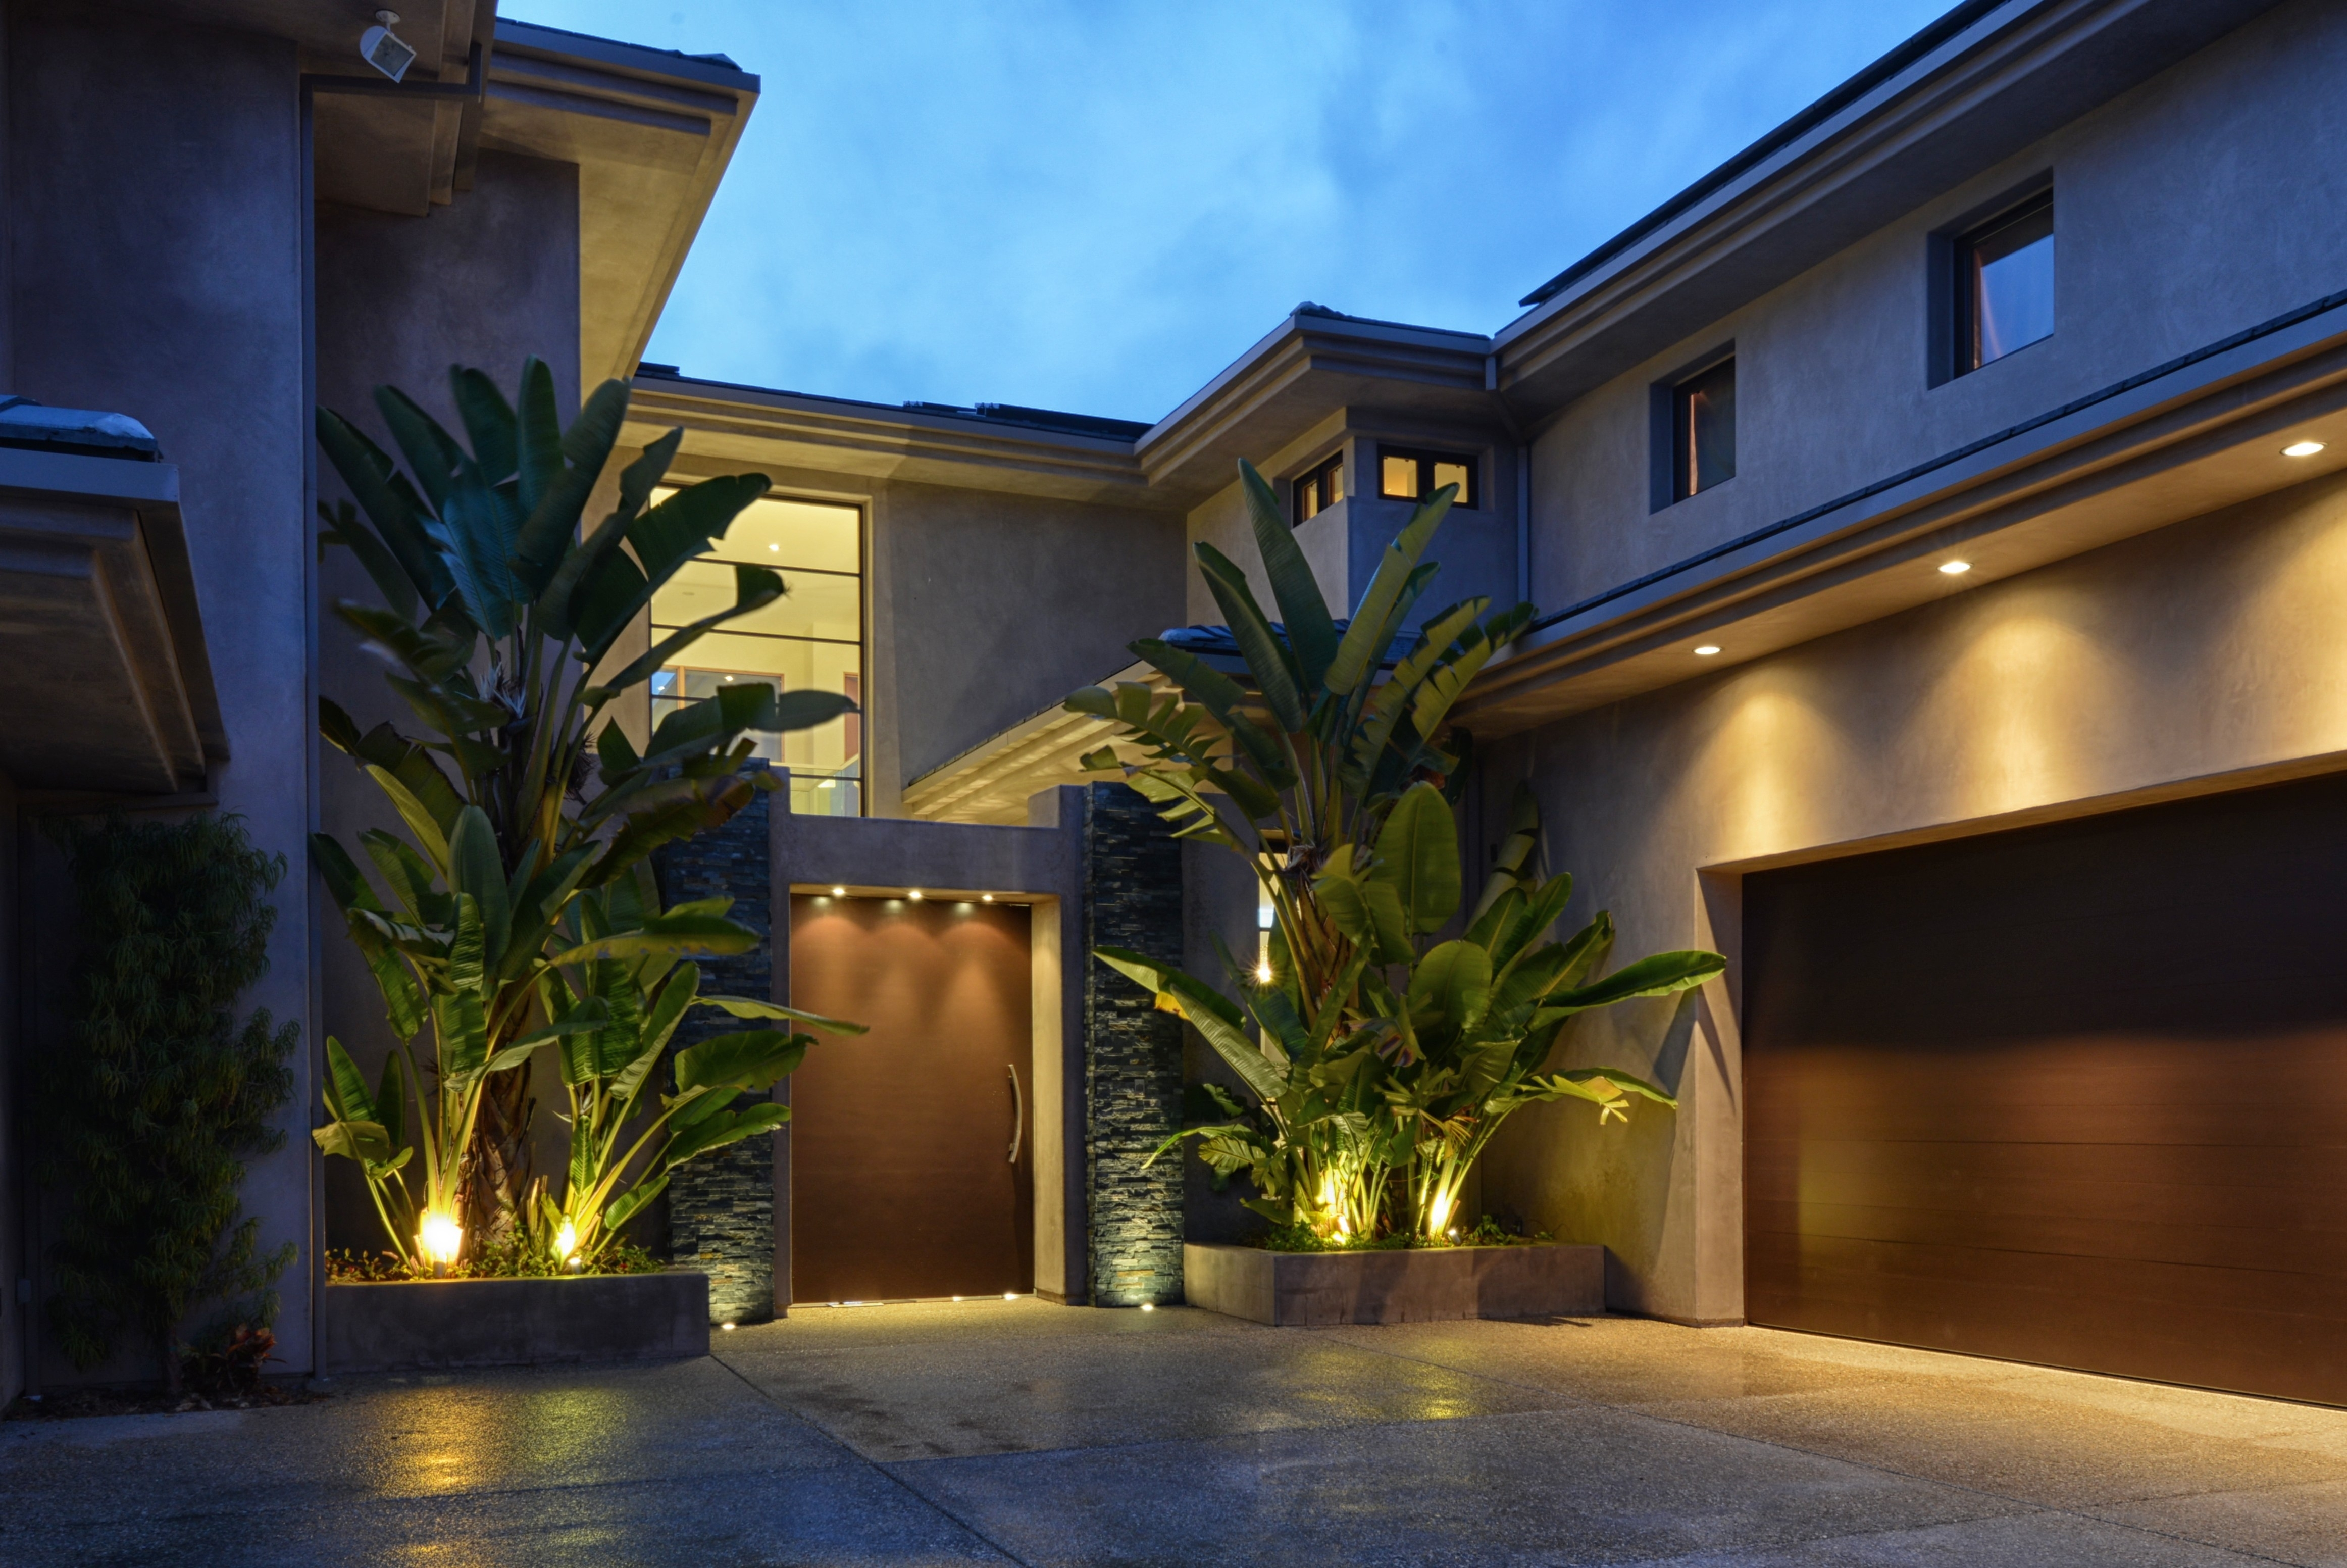 Outdoor Home Lighting Fixtures Patio Amazing Paper Lanterns For Pertaining To Outdoor Paper Lanterns For Patio (View 5 of 20)